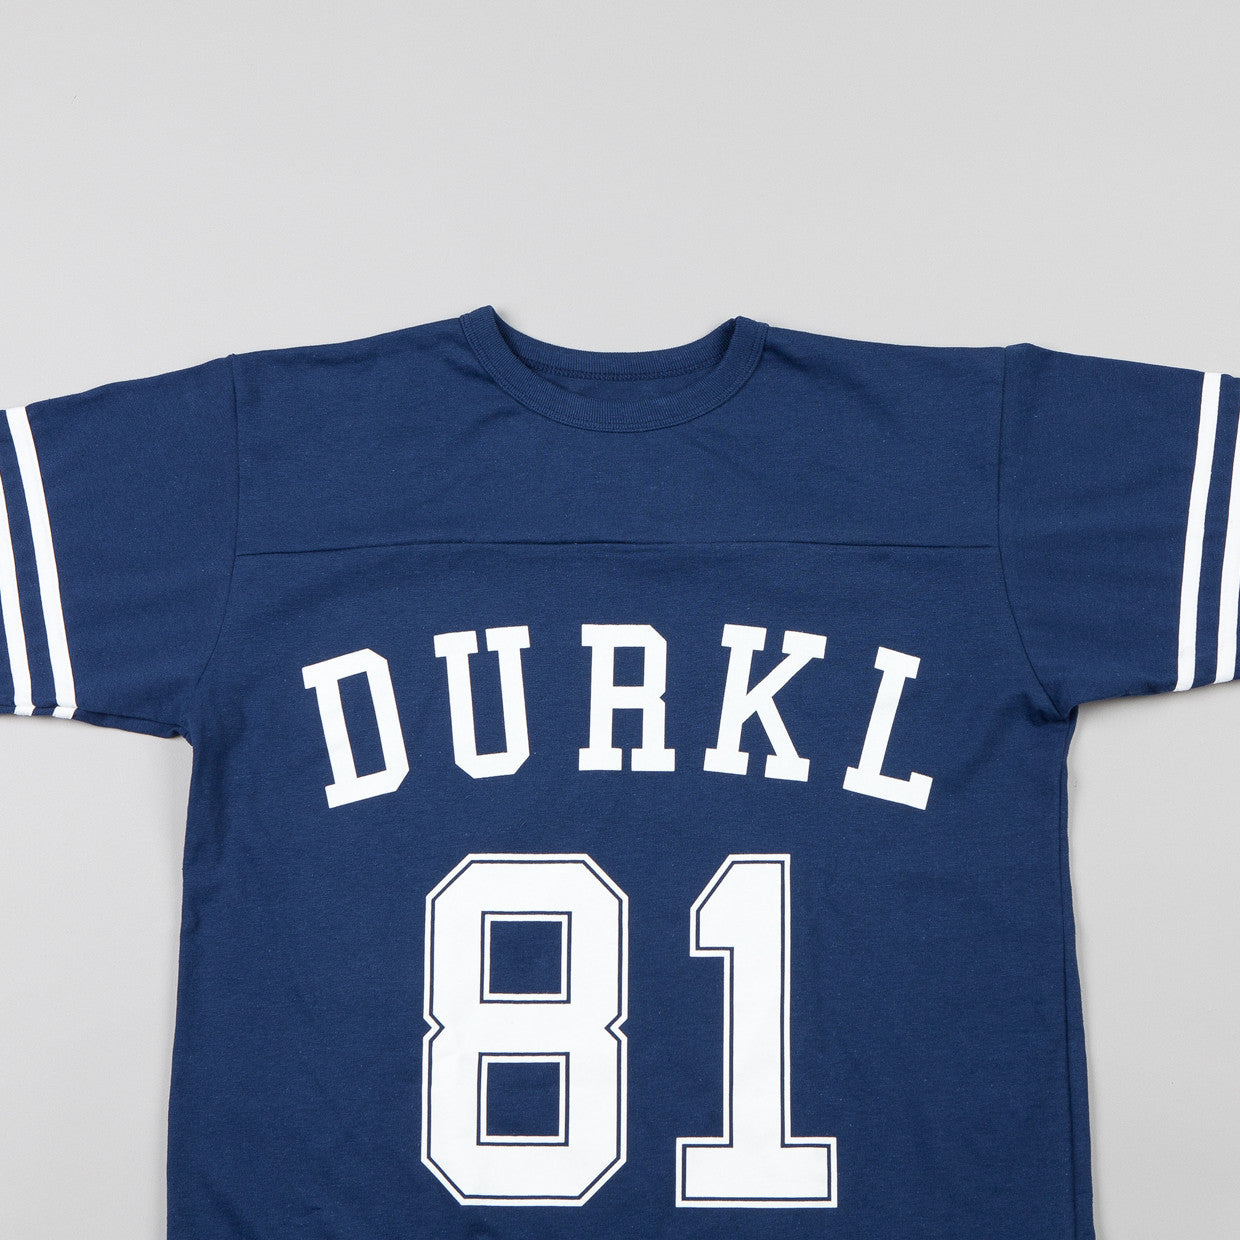 Durkl Maltman Football Jersey Blue